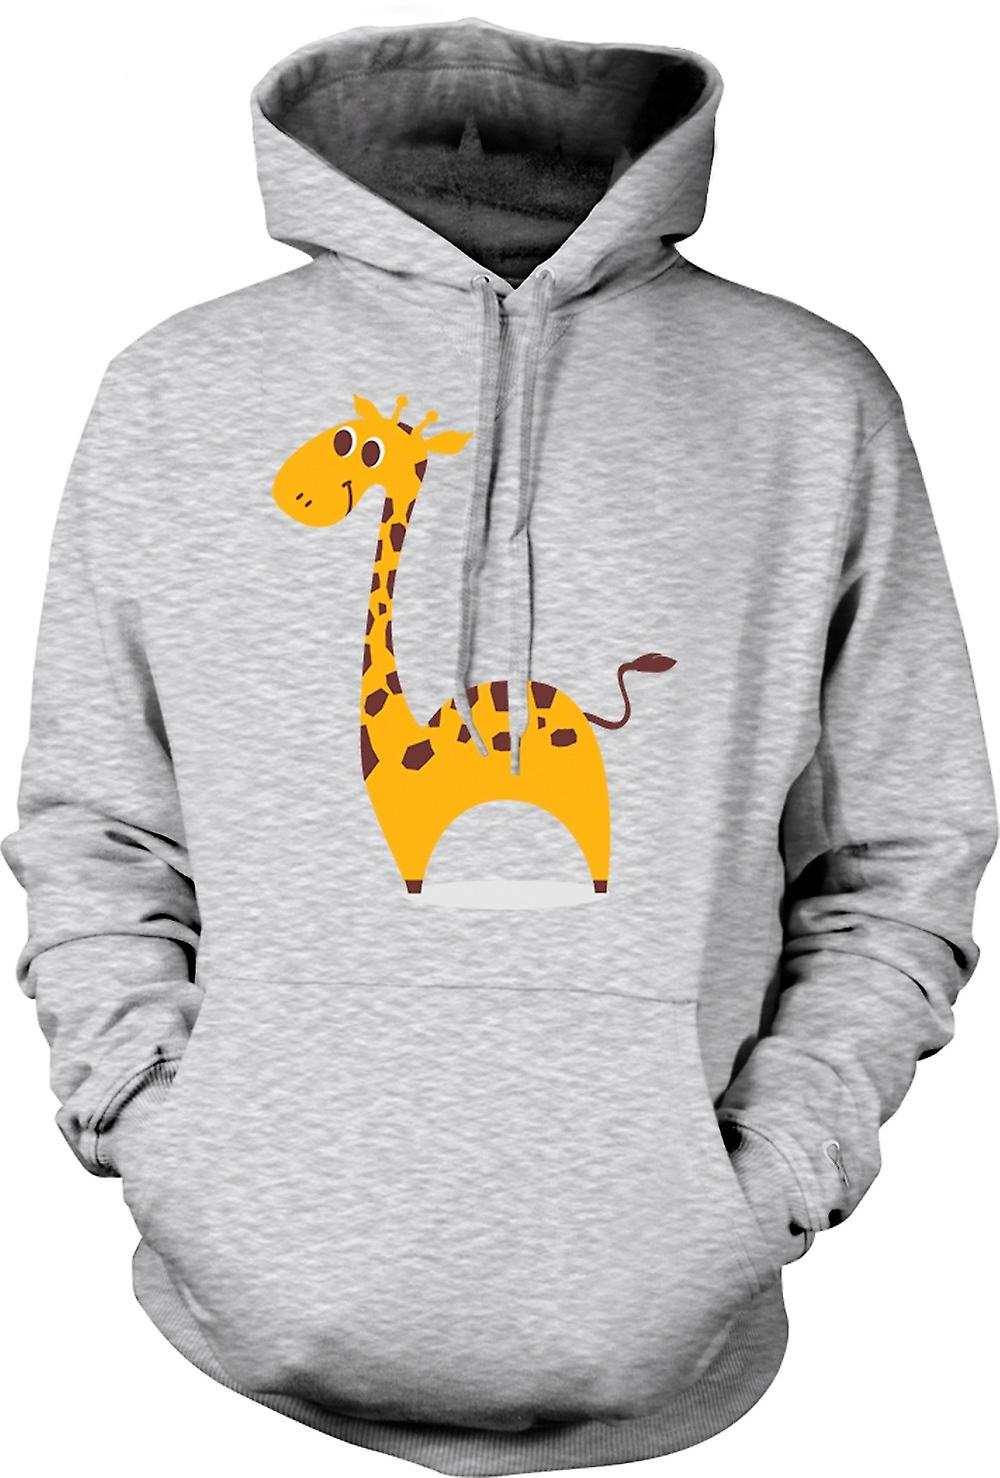 Mens Hoodie - I Love Giraffes - Cute Animal